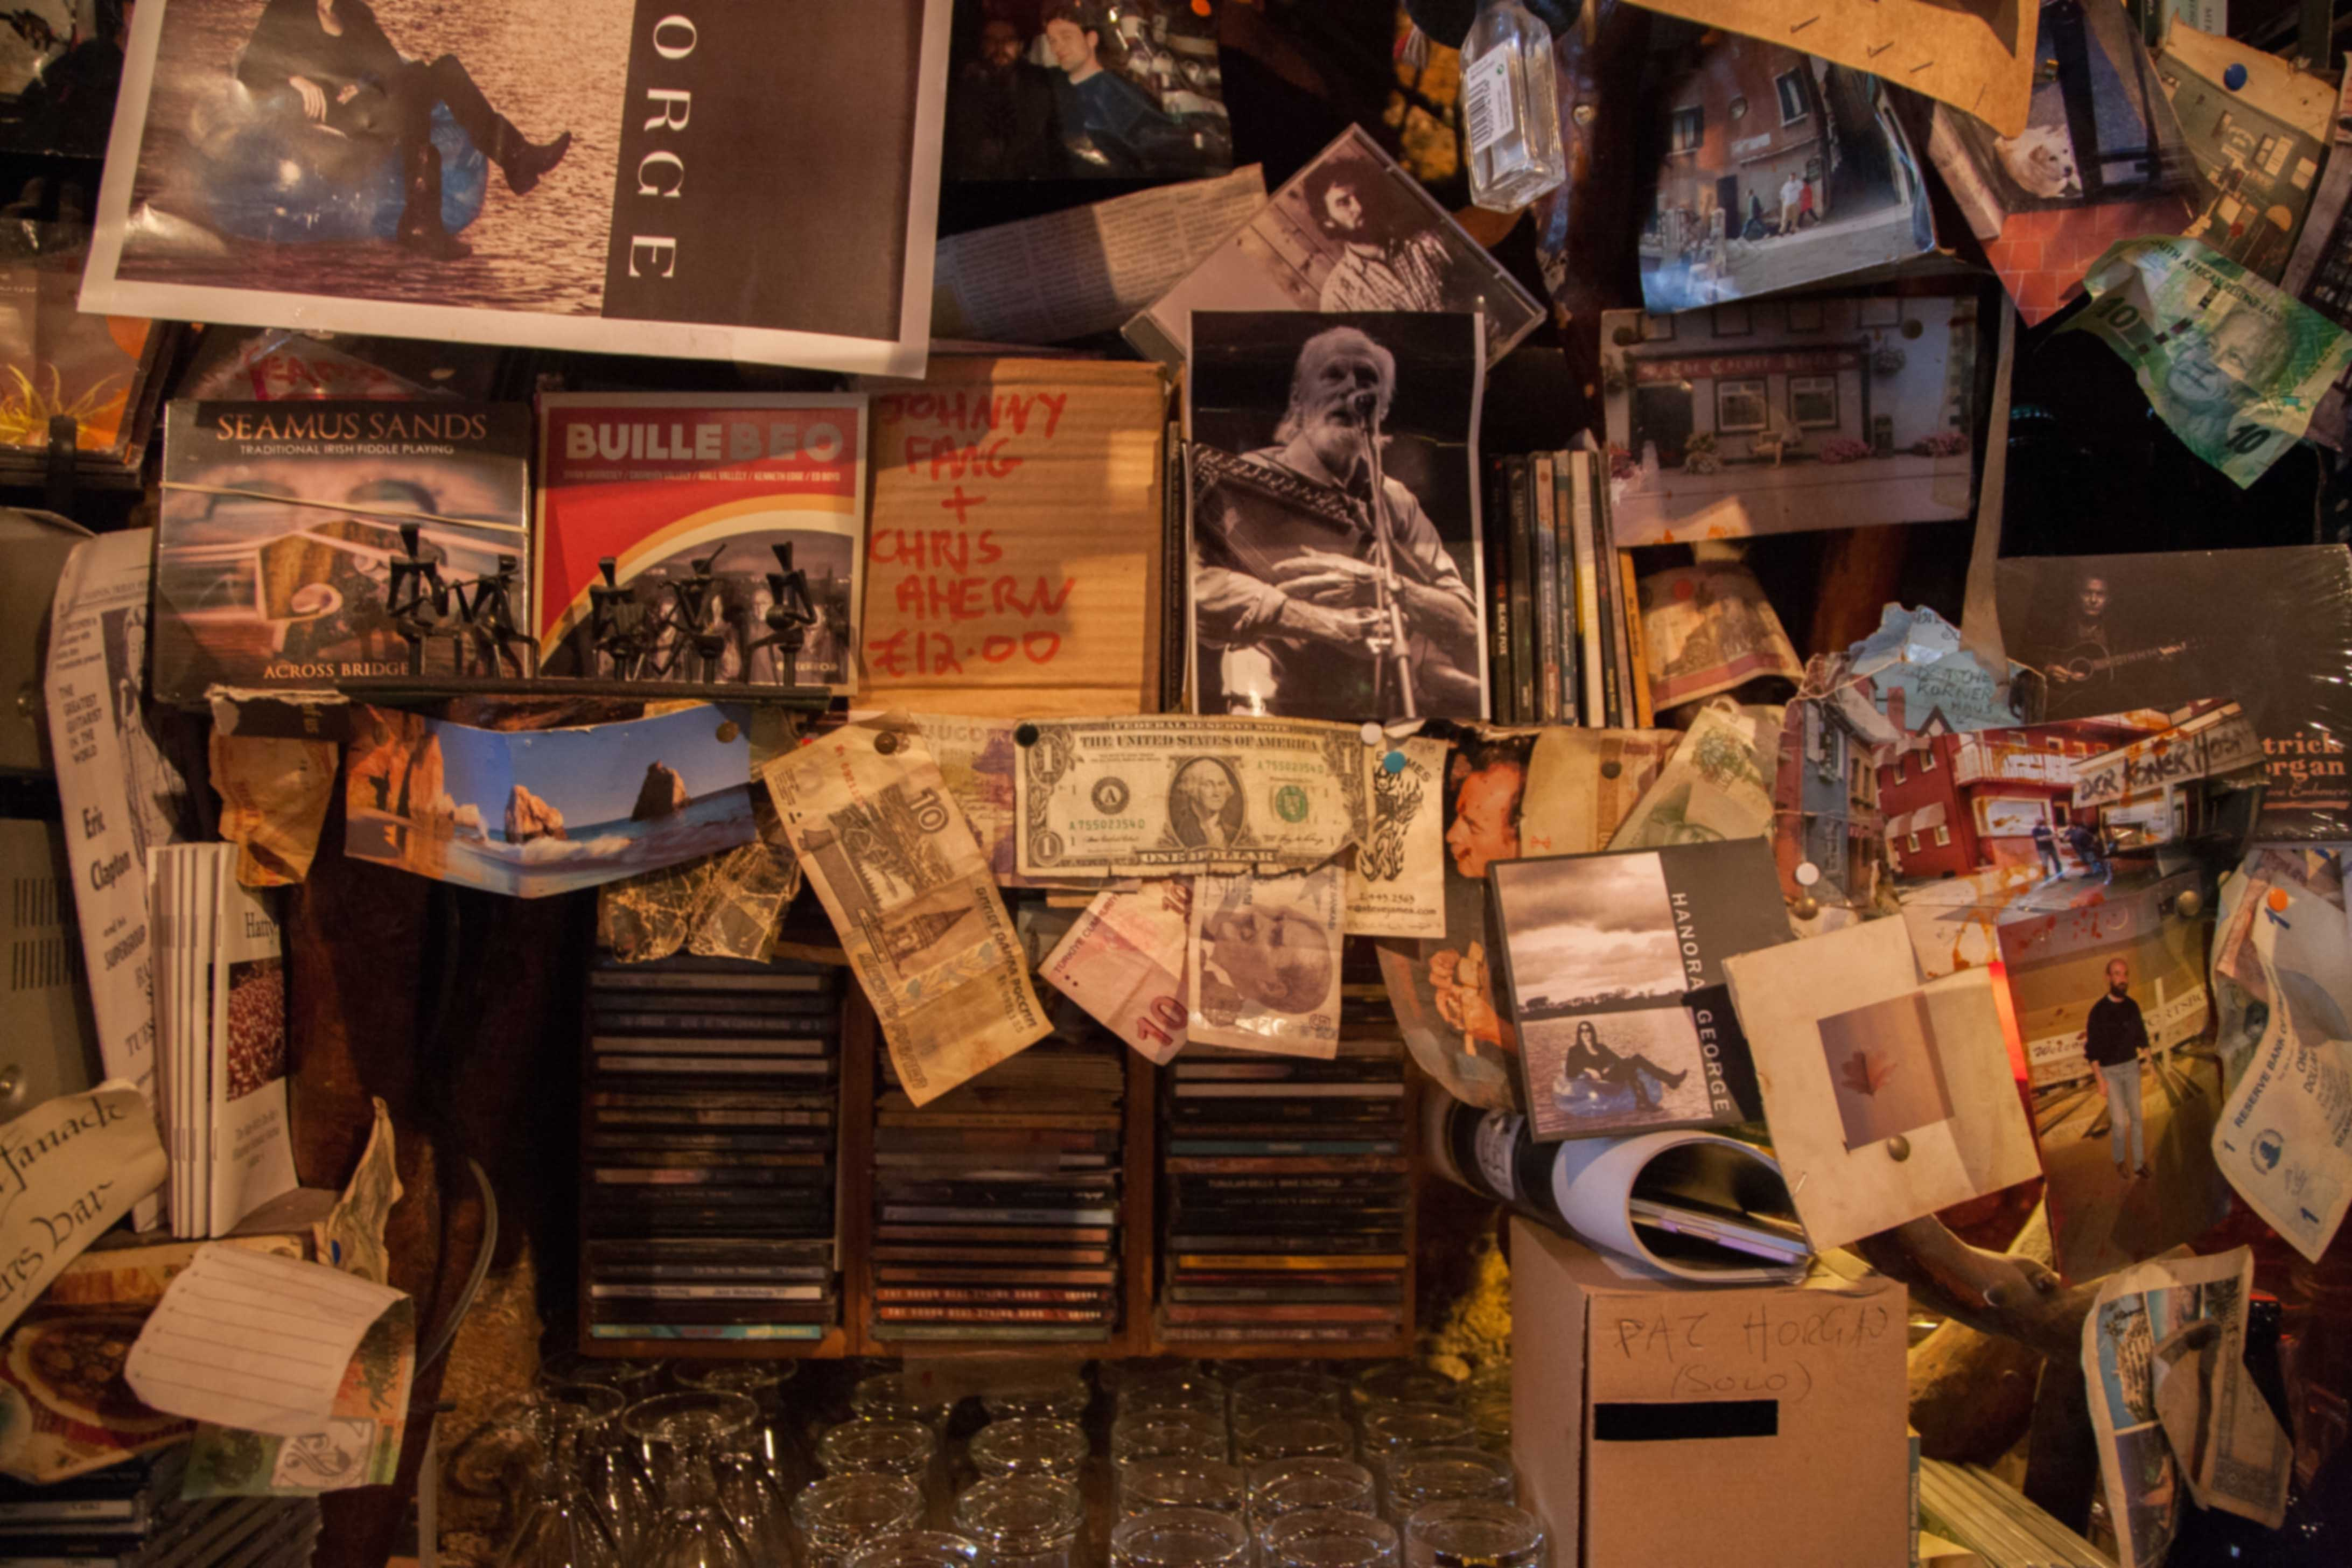 Music cd's and clutter behind the bar of a traditional pub